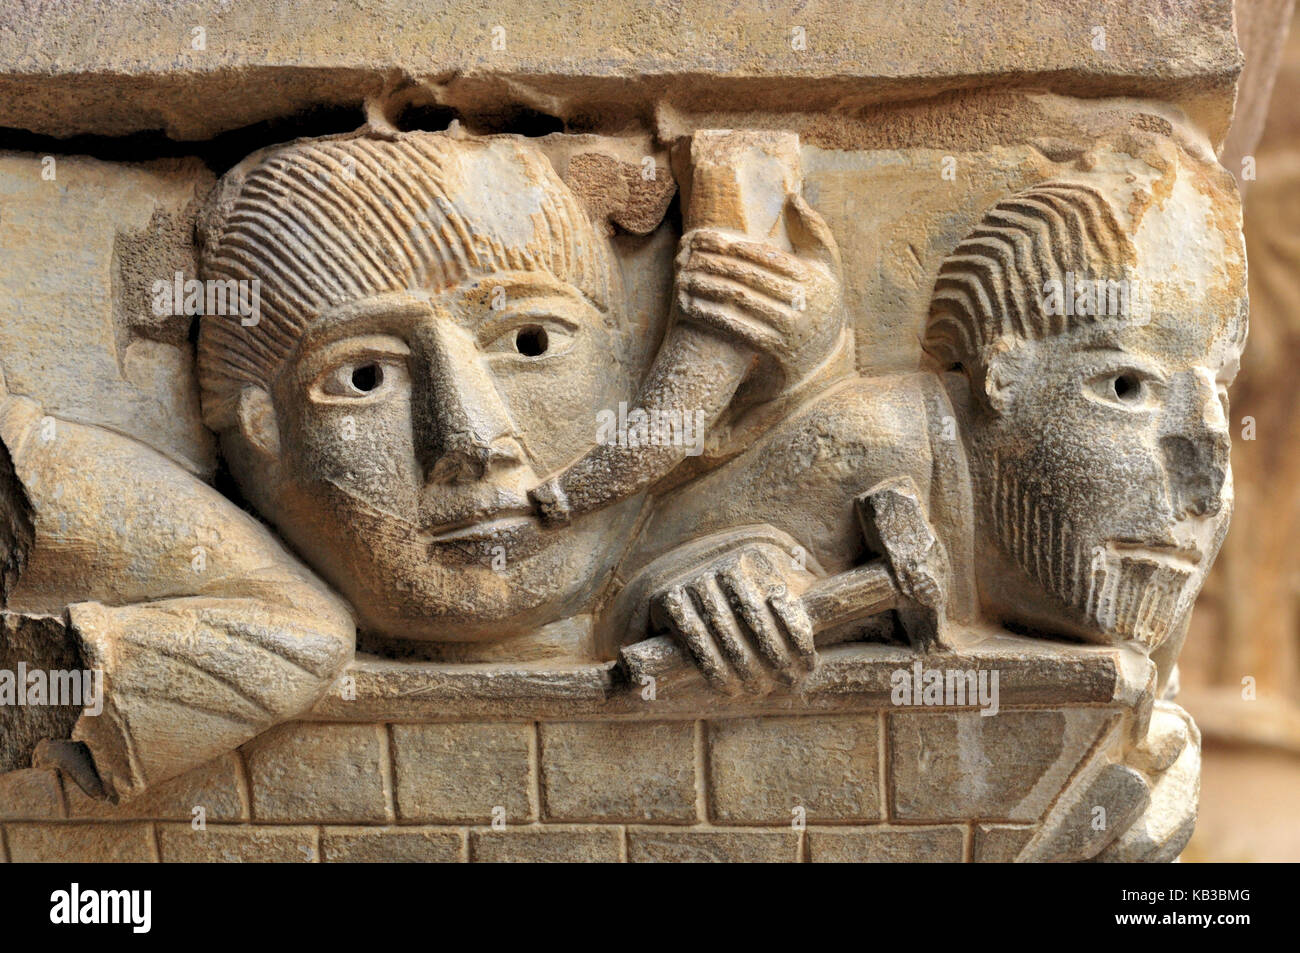 France, Midi-Pyrénées, Romanesque capital of the abbey St. Foy in Conques, - Stock Image